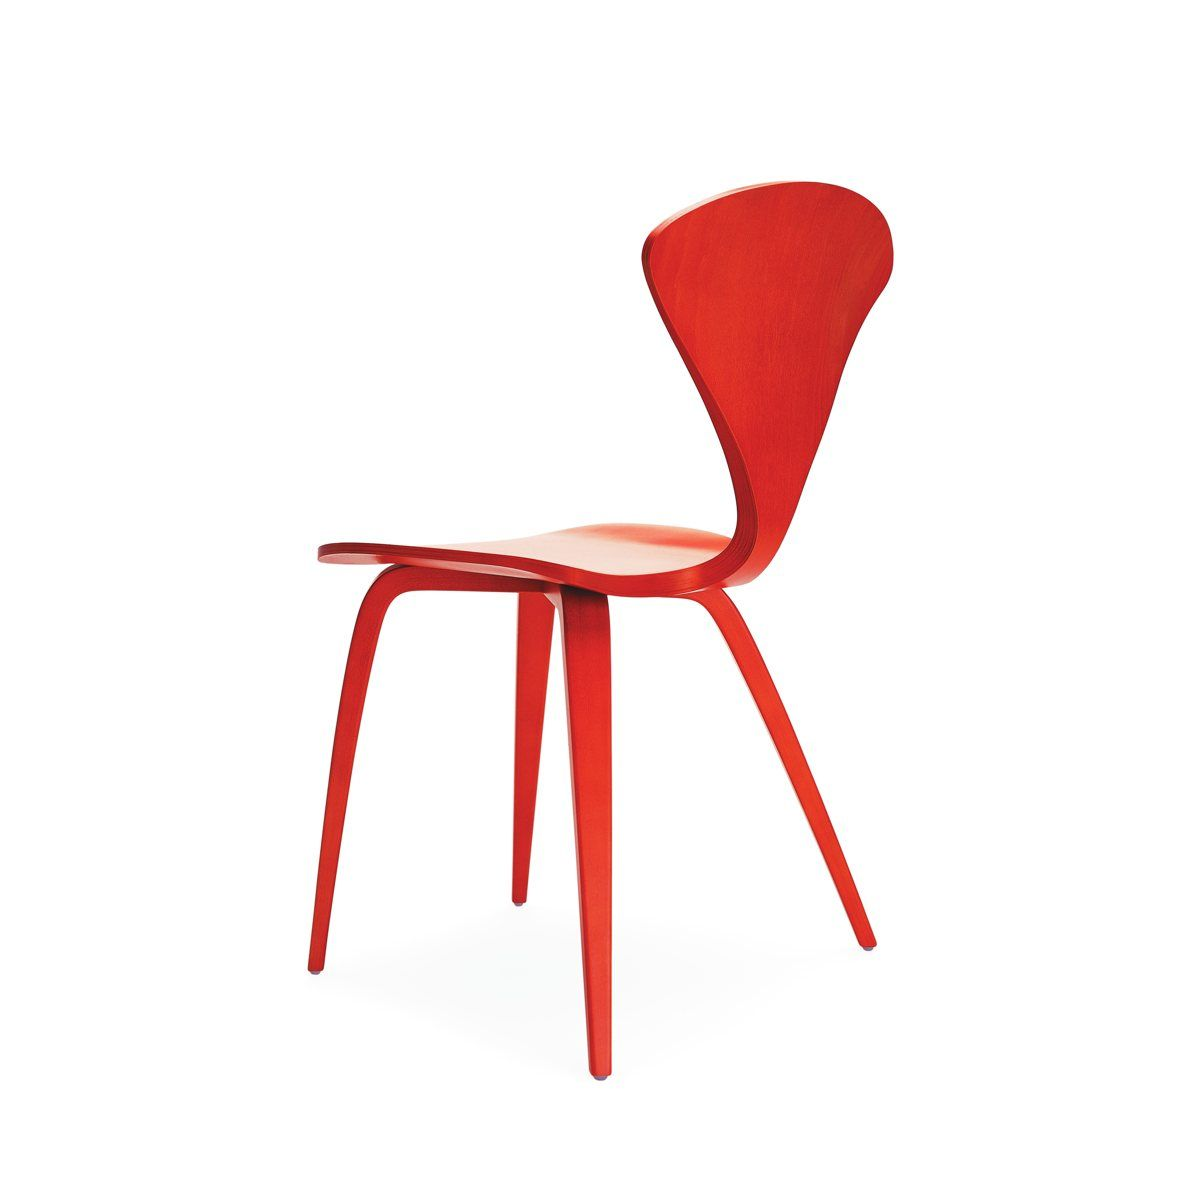 Cherner Side Chair Wood Base By Norman Cherner For The Cherner Chair Company .